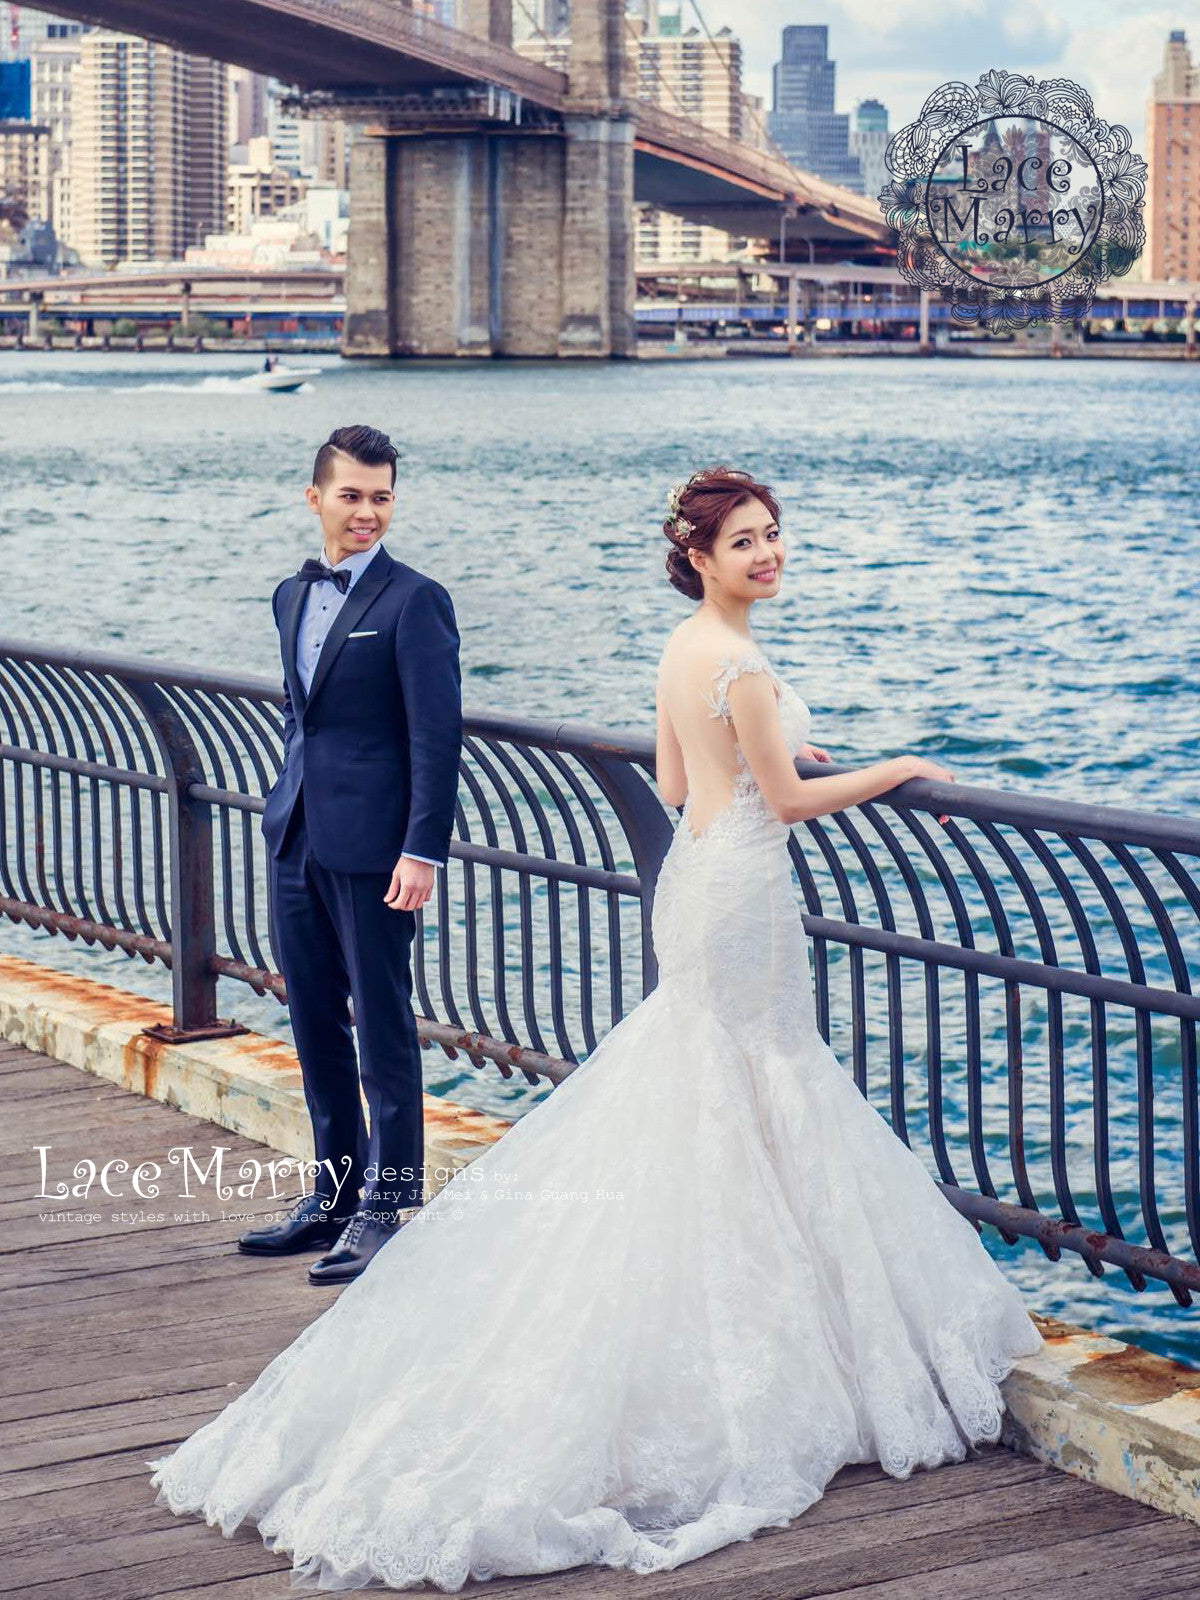 Featured LaceMarry Brides - Vega